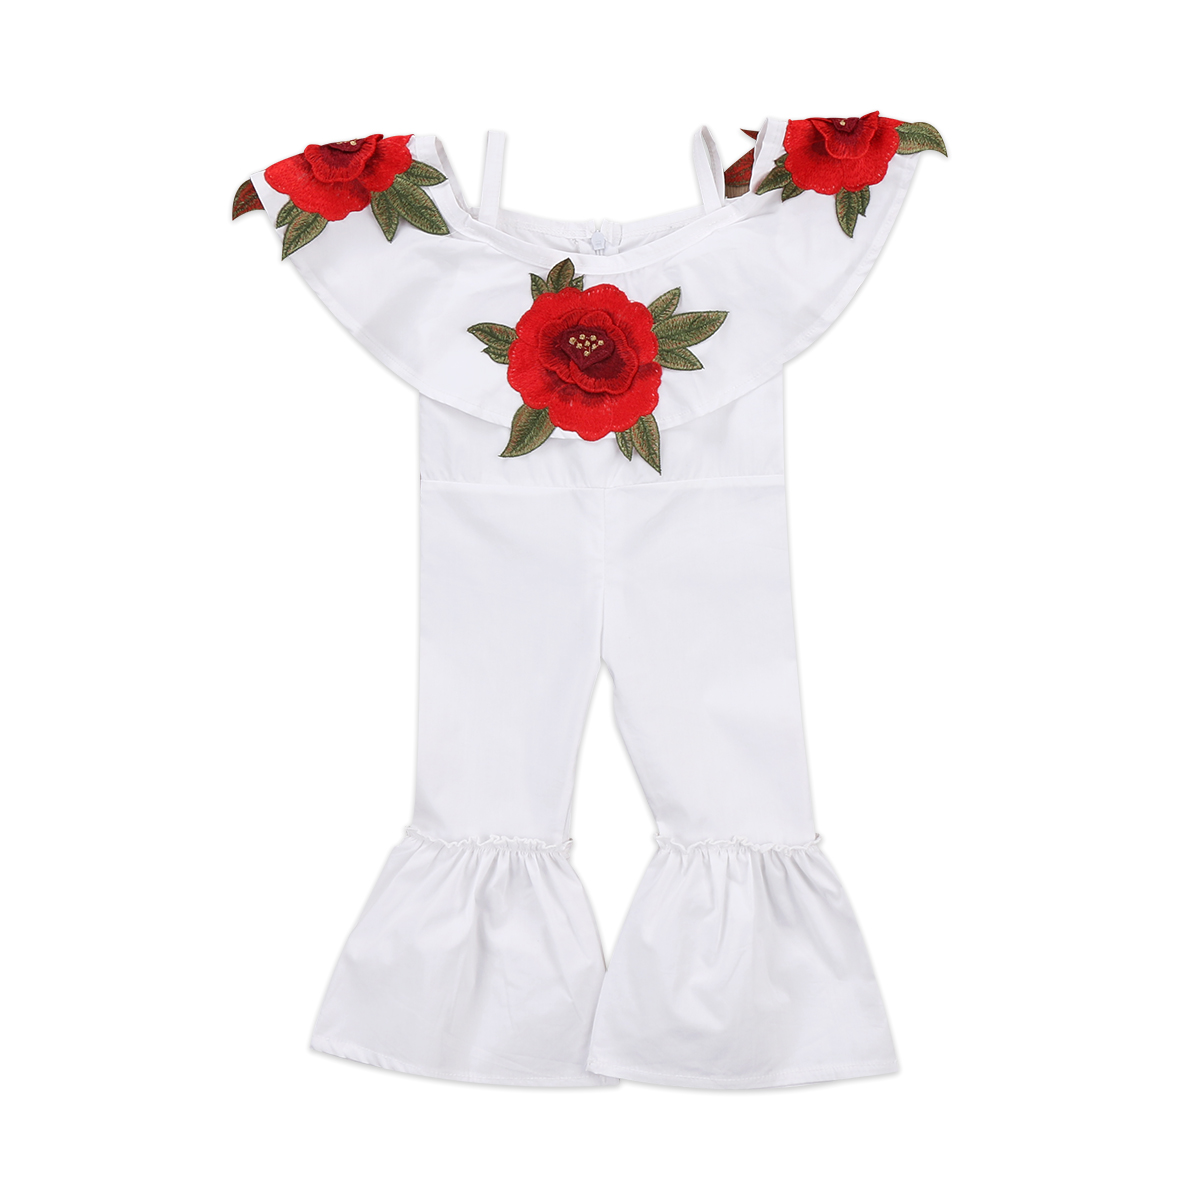 2018 new Fashion 2018 Kid 1 Girls 3D rose Floral   Romper   Flared Jumpsuits Trousers Outfit Clothes